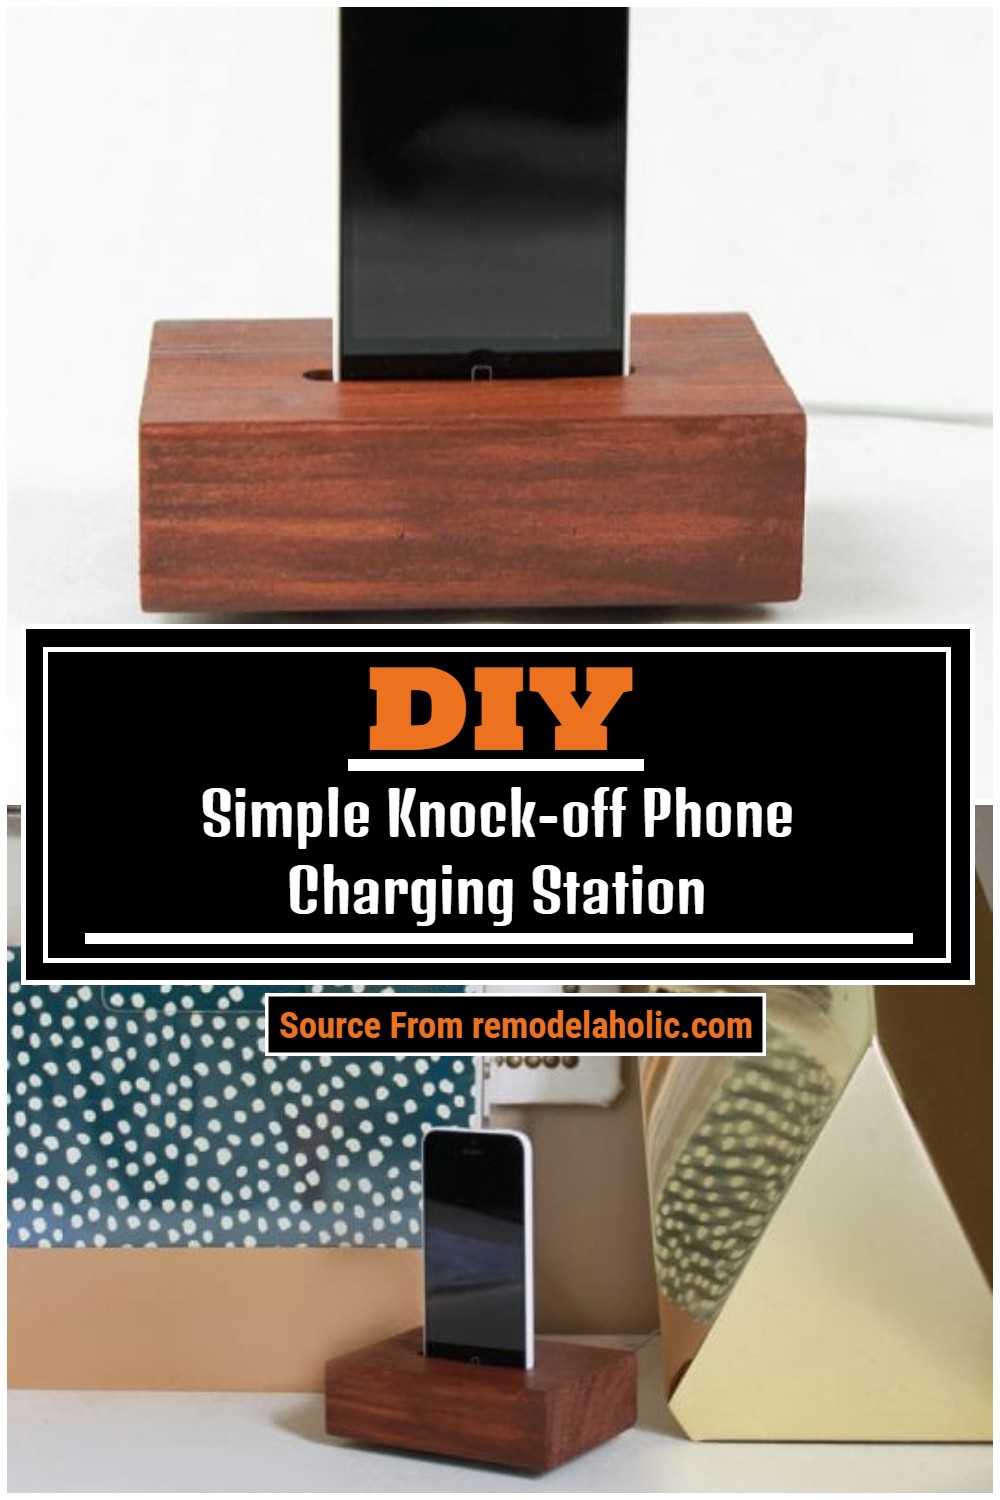 DIY Simple Knock-off Phone Charging Station